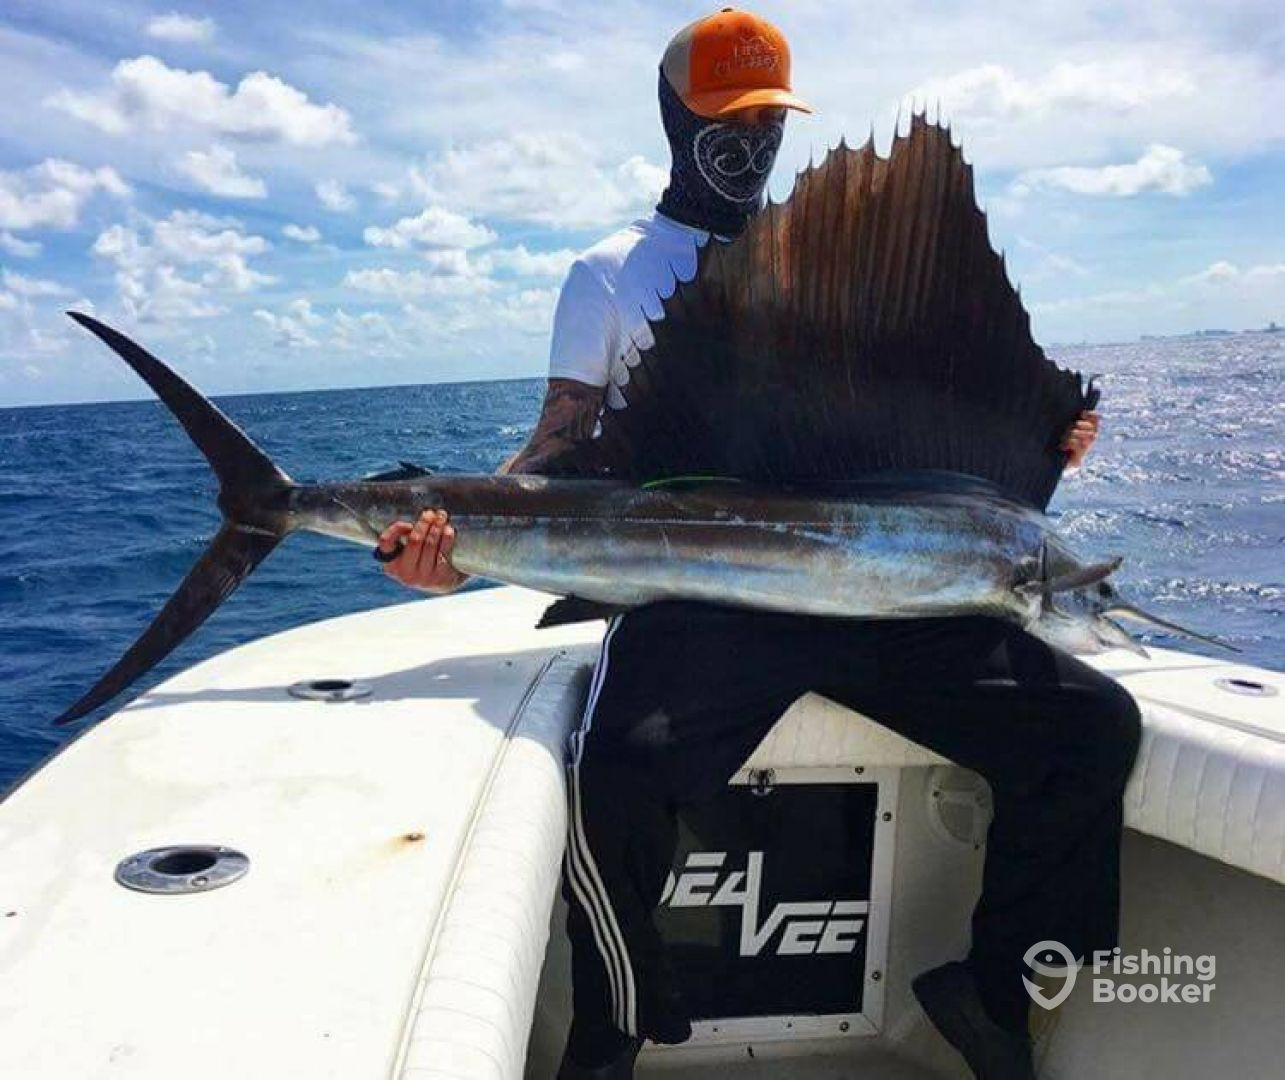 Benny 39 s book a mate fishing charter pompano beach fl for Pompano beach fishing charters